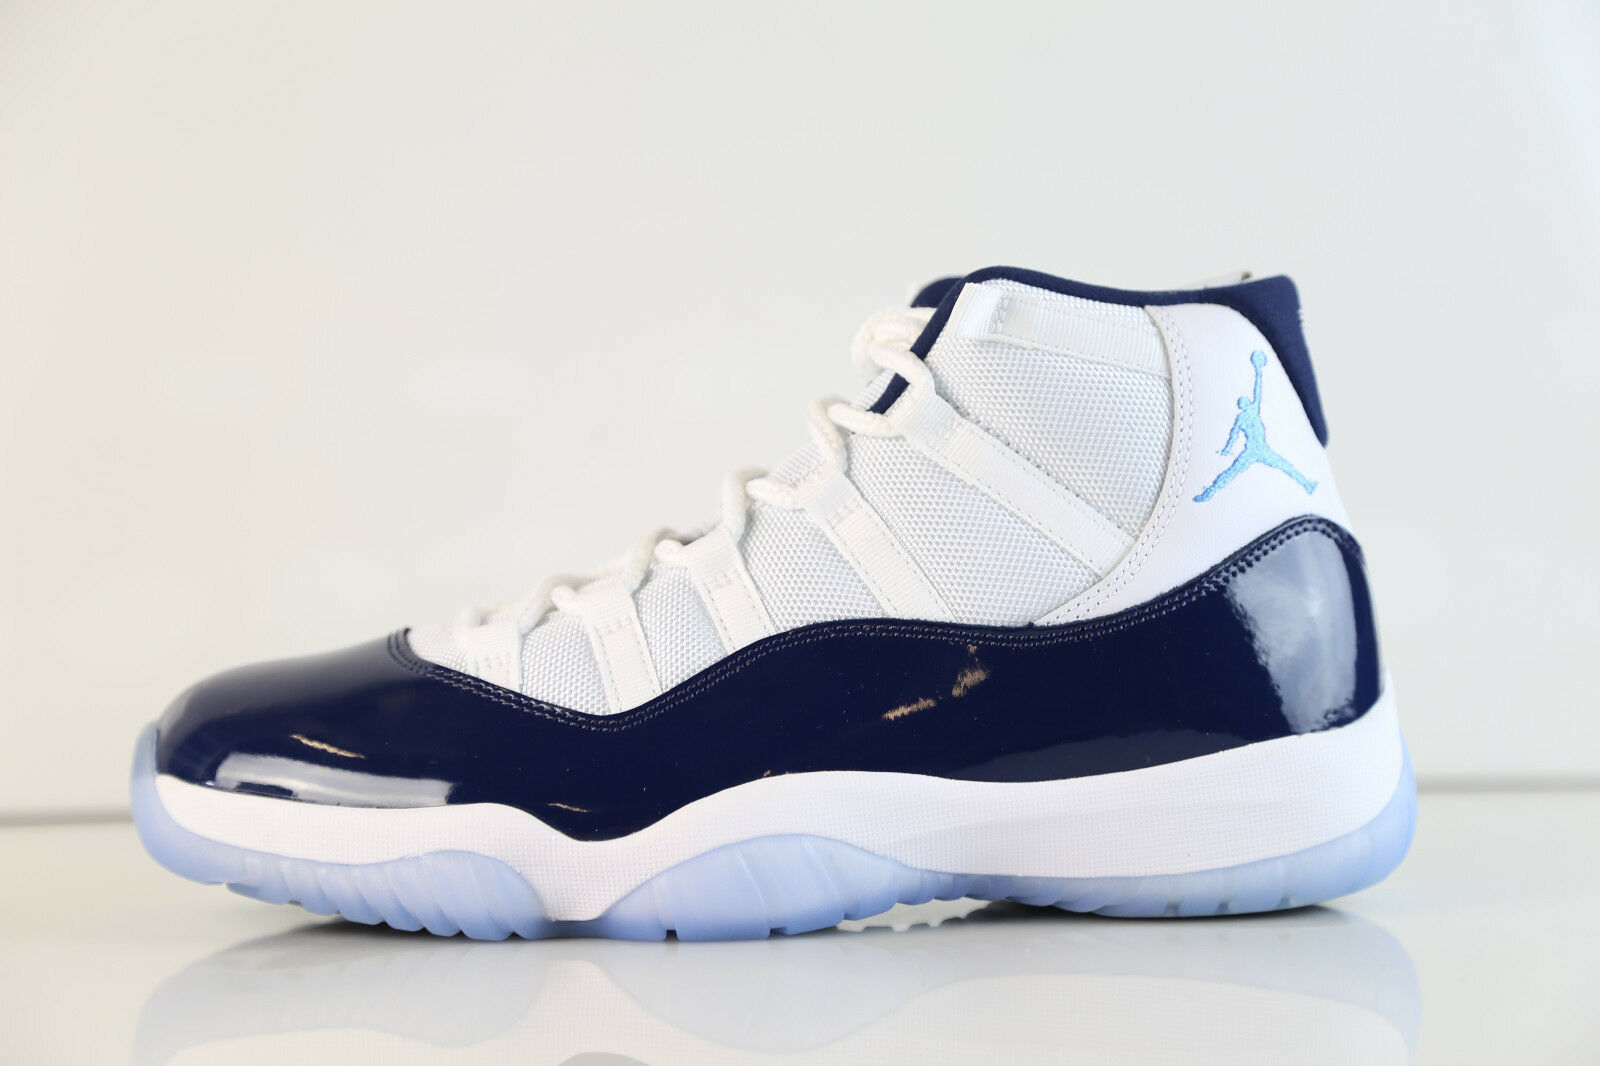 Air Jordan Navy Retro UNC Blanco Midnight Navy Jordan University Azul 378037-123 8 - 14 XI c61024